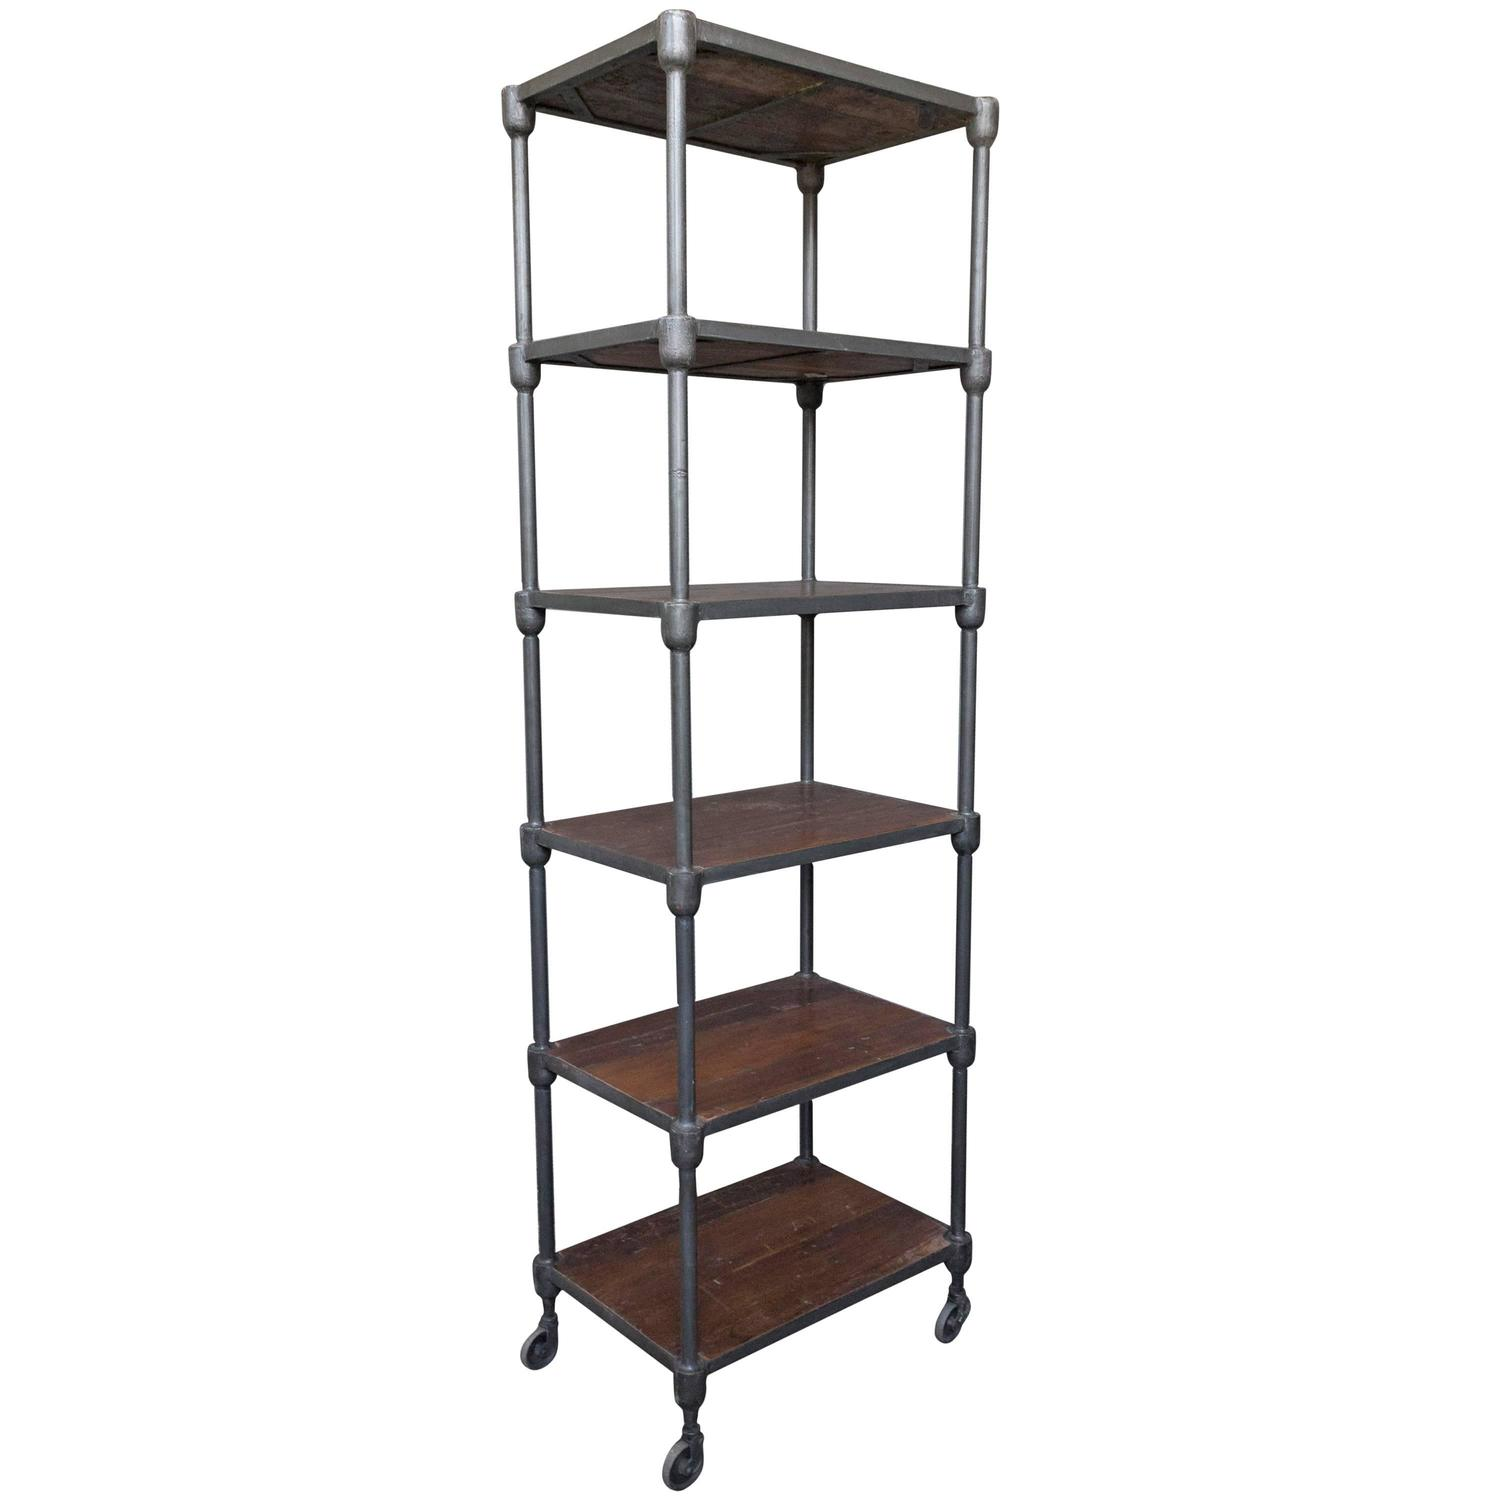 Very Impressive portraiture of Tall Wood and Metal Industrial Shelving Unit on Casters at 1stdibs with #5F4741 color and 1500x1500 pixels